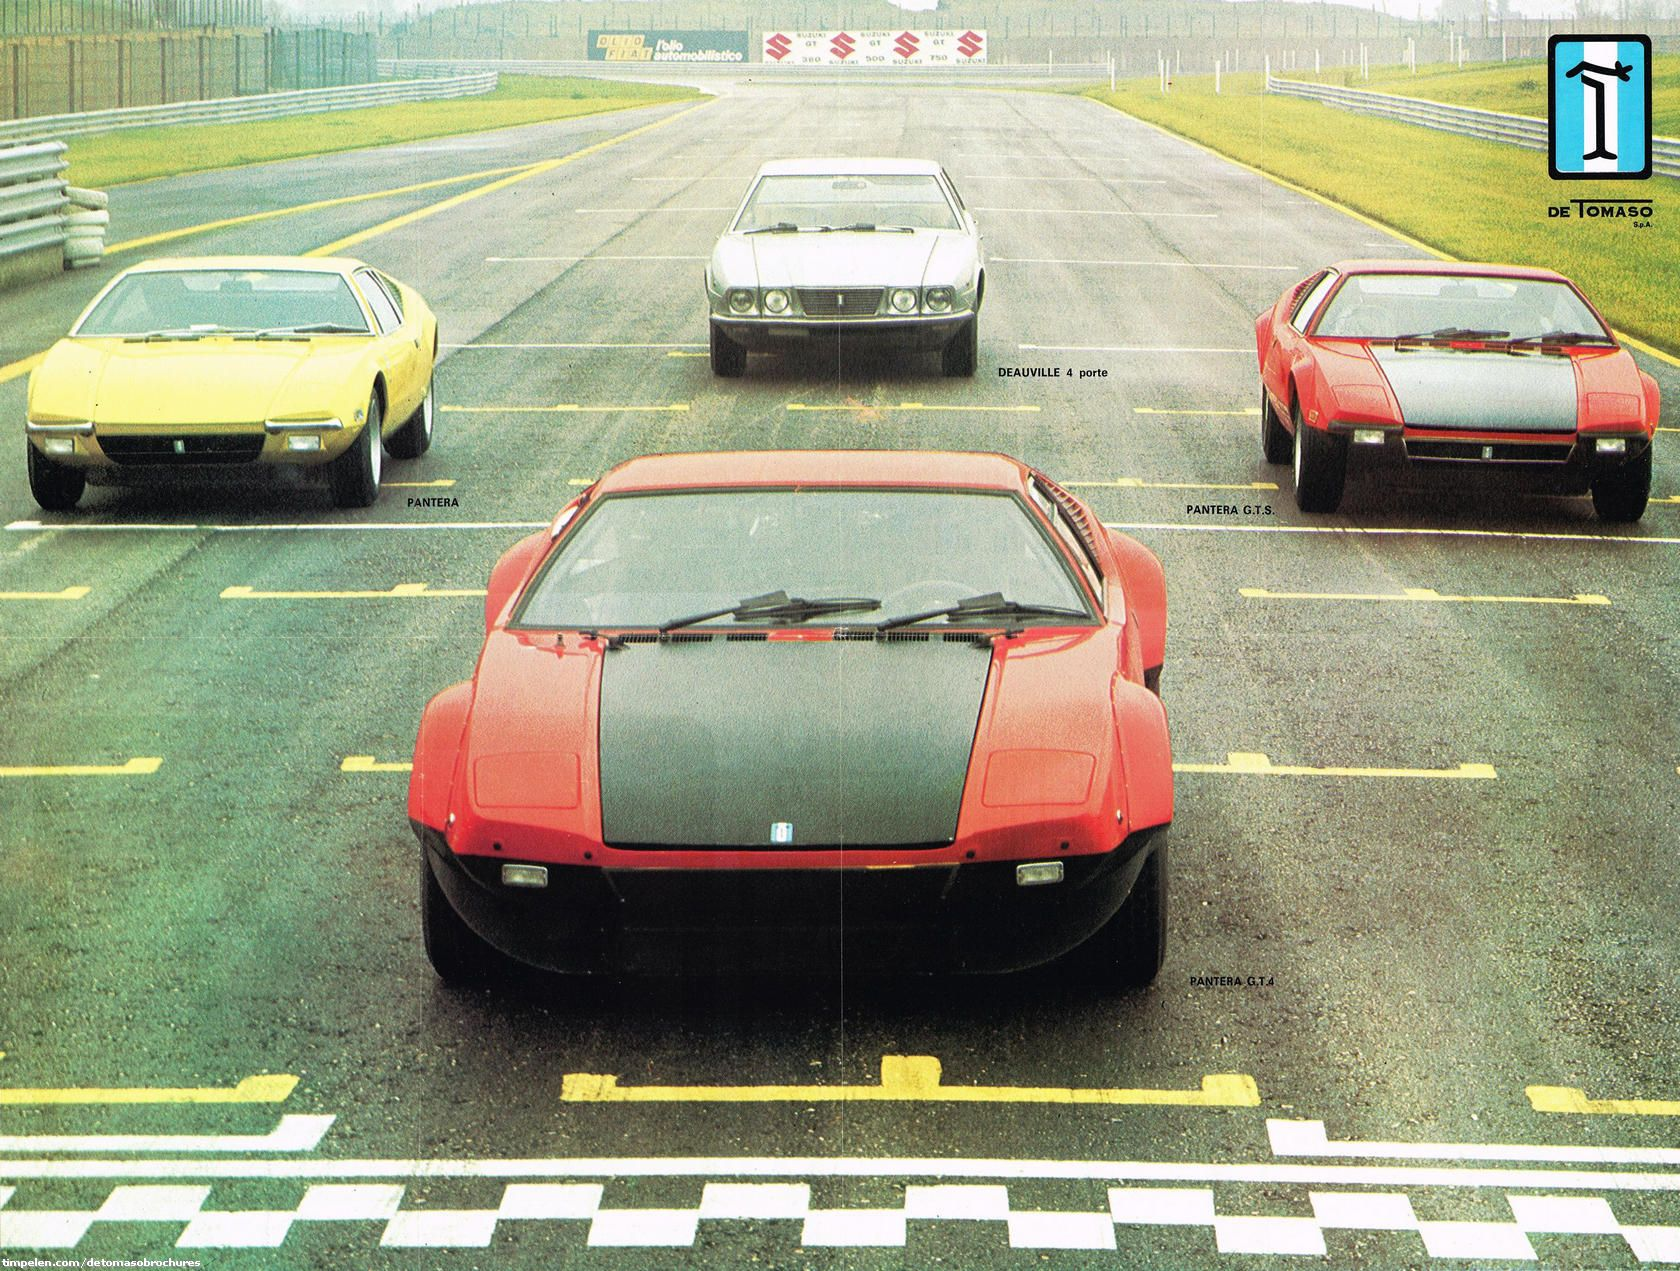 1973 Detomaso Line Up Showing The Pantera From The Left L Gr 4 And Gts And The Deauville Sedan On The Background